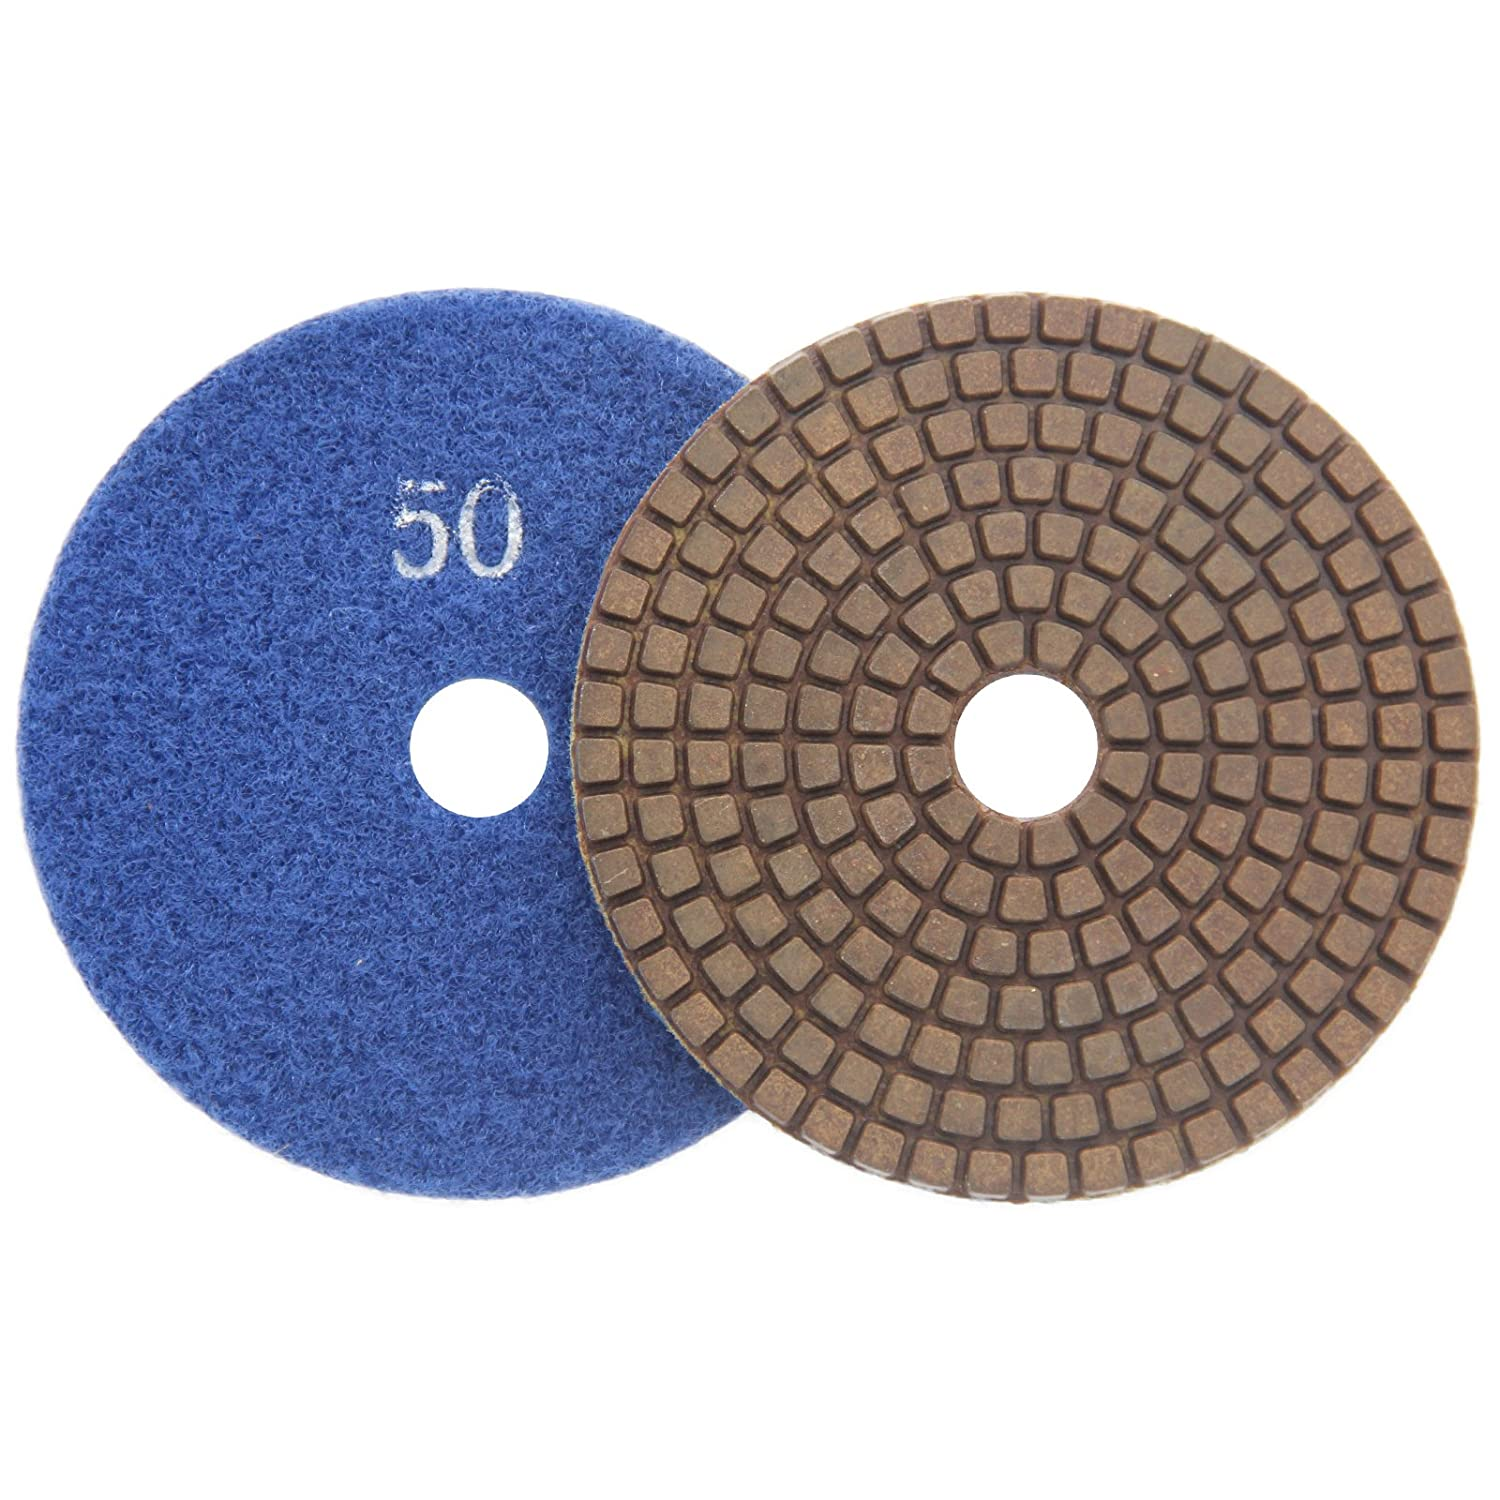 Ltd Fujian Yida Nano Materials Technology Co 7 Pcs//lot Easy Light 4 Inch Copper Diamond Polishing Pads Sanding Tool for Granite Marble Concrete Engineered Stone